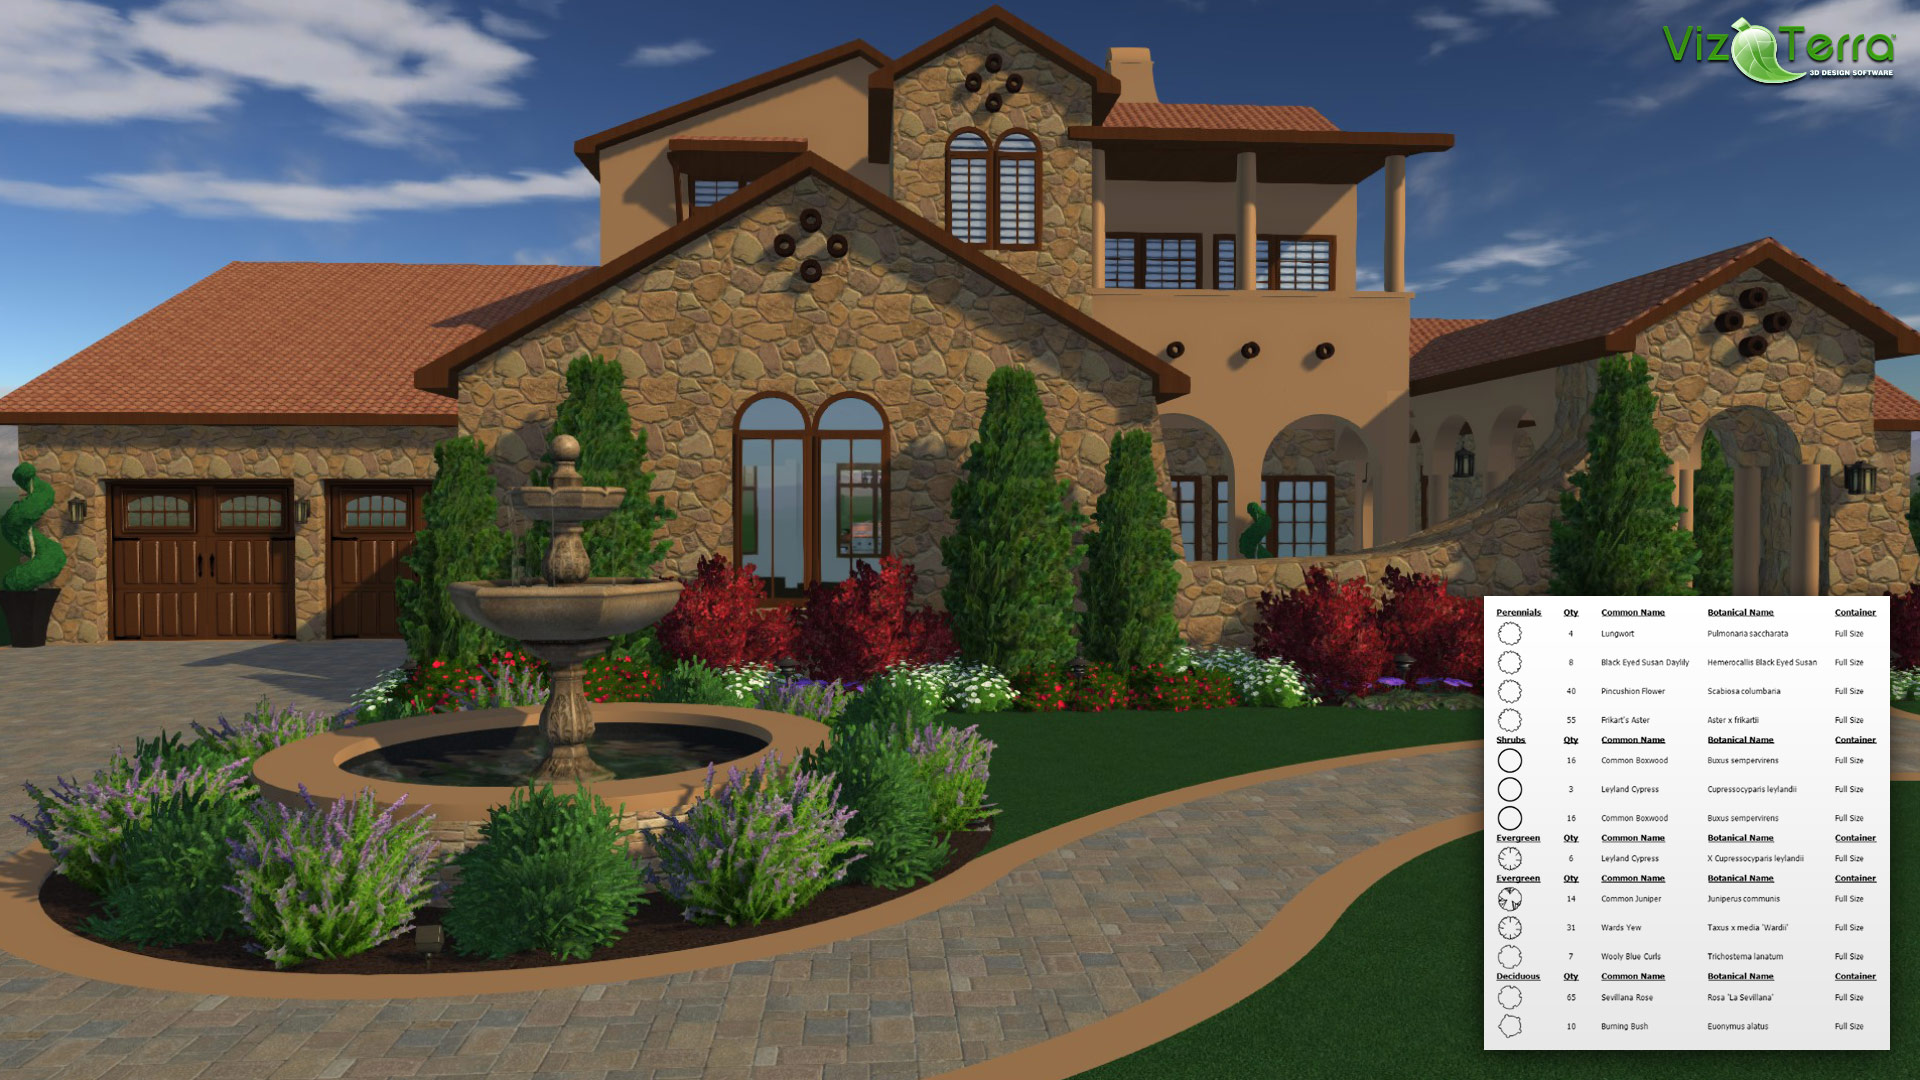 Amazon.com: VizTerra   Professional 3D Hardscape And Landscape Design  Software (12 Month Access) [Download]: Software